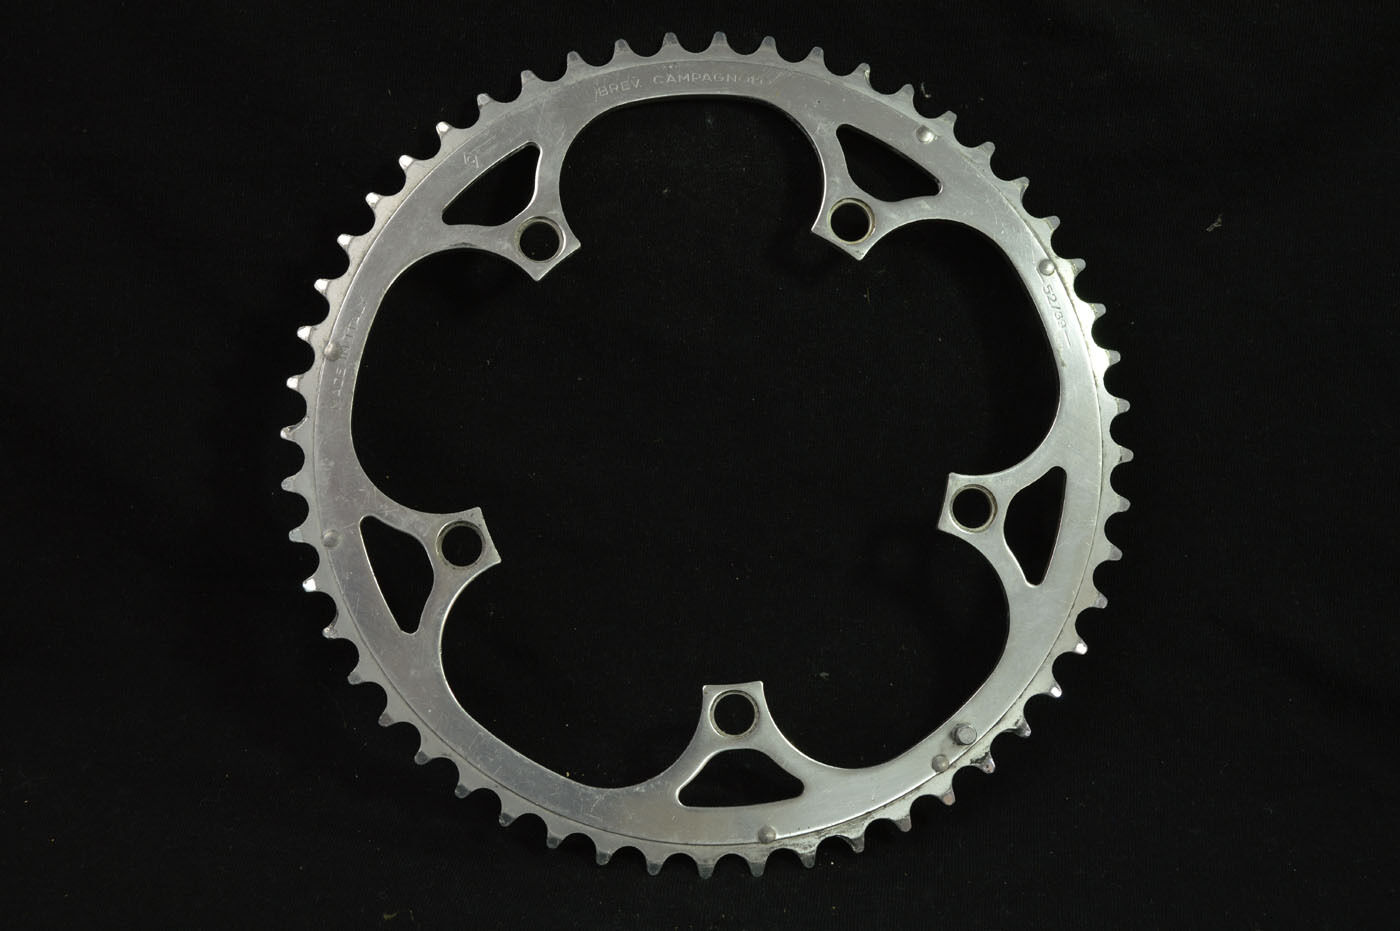 Chainring Campagnolo 52 39 made in italy alloy 52t bcd- 135